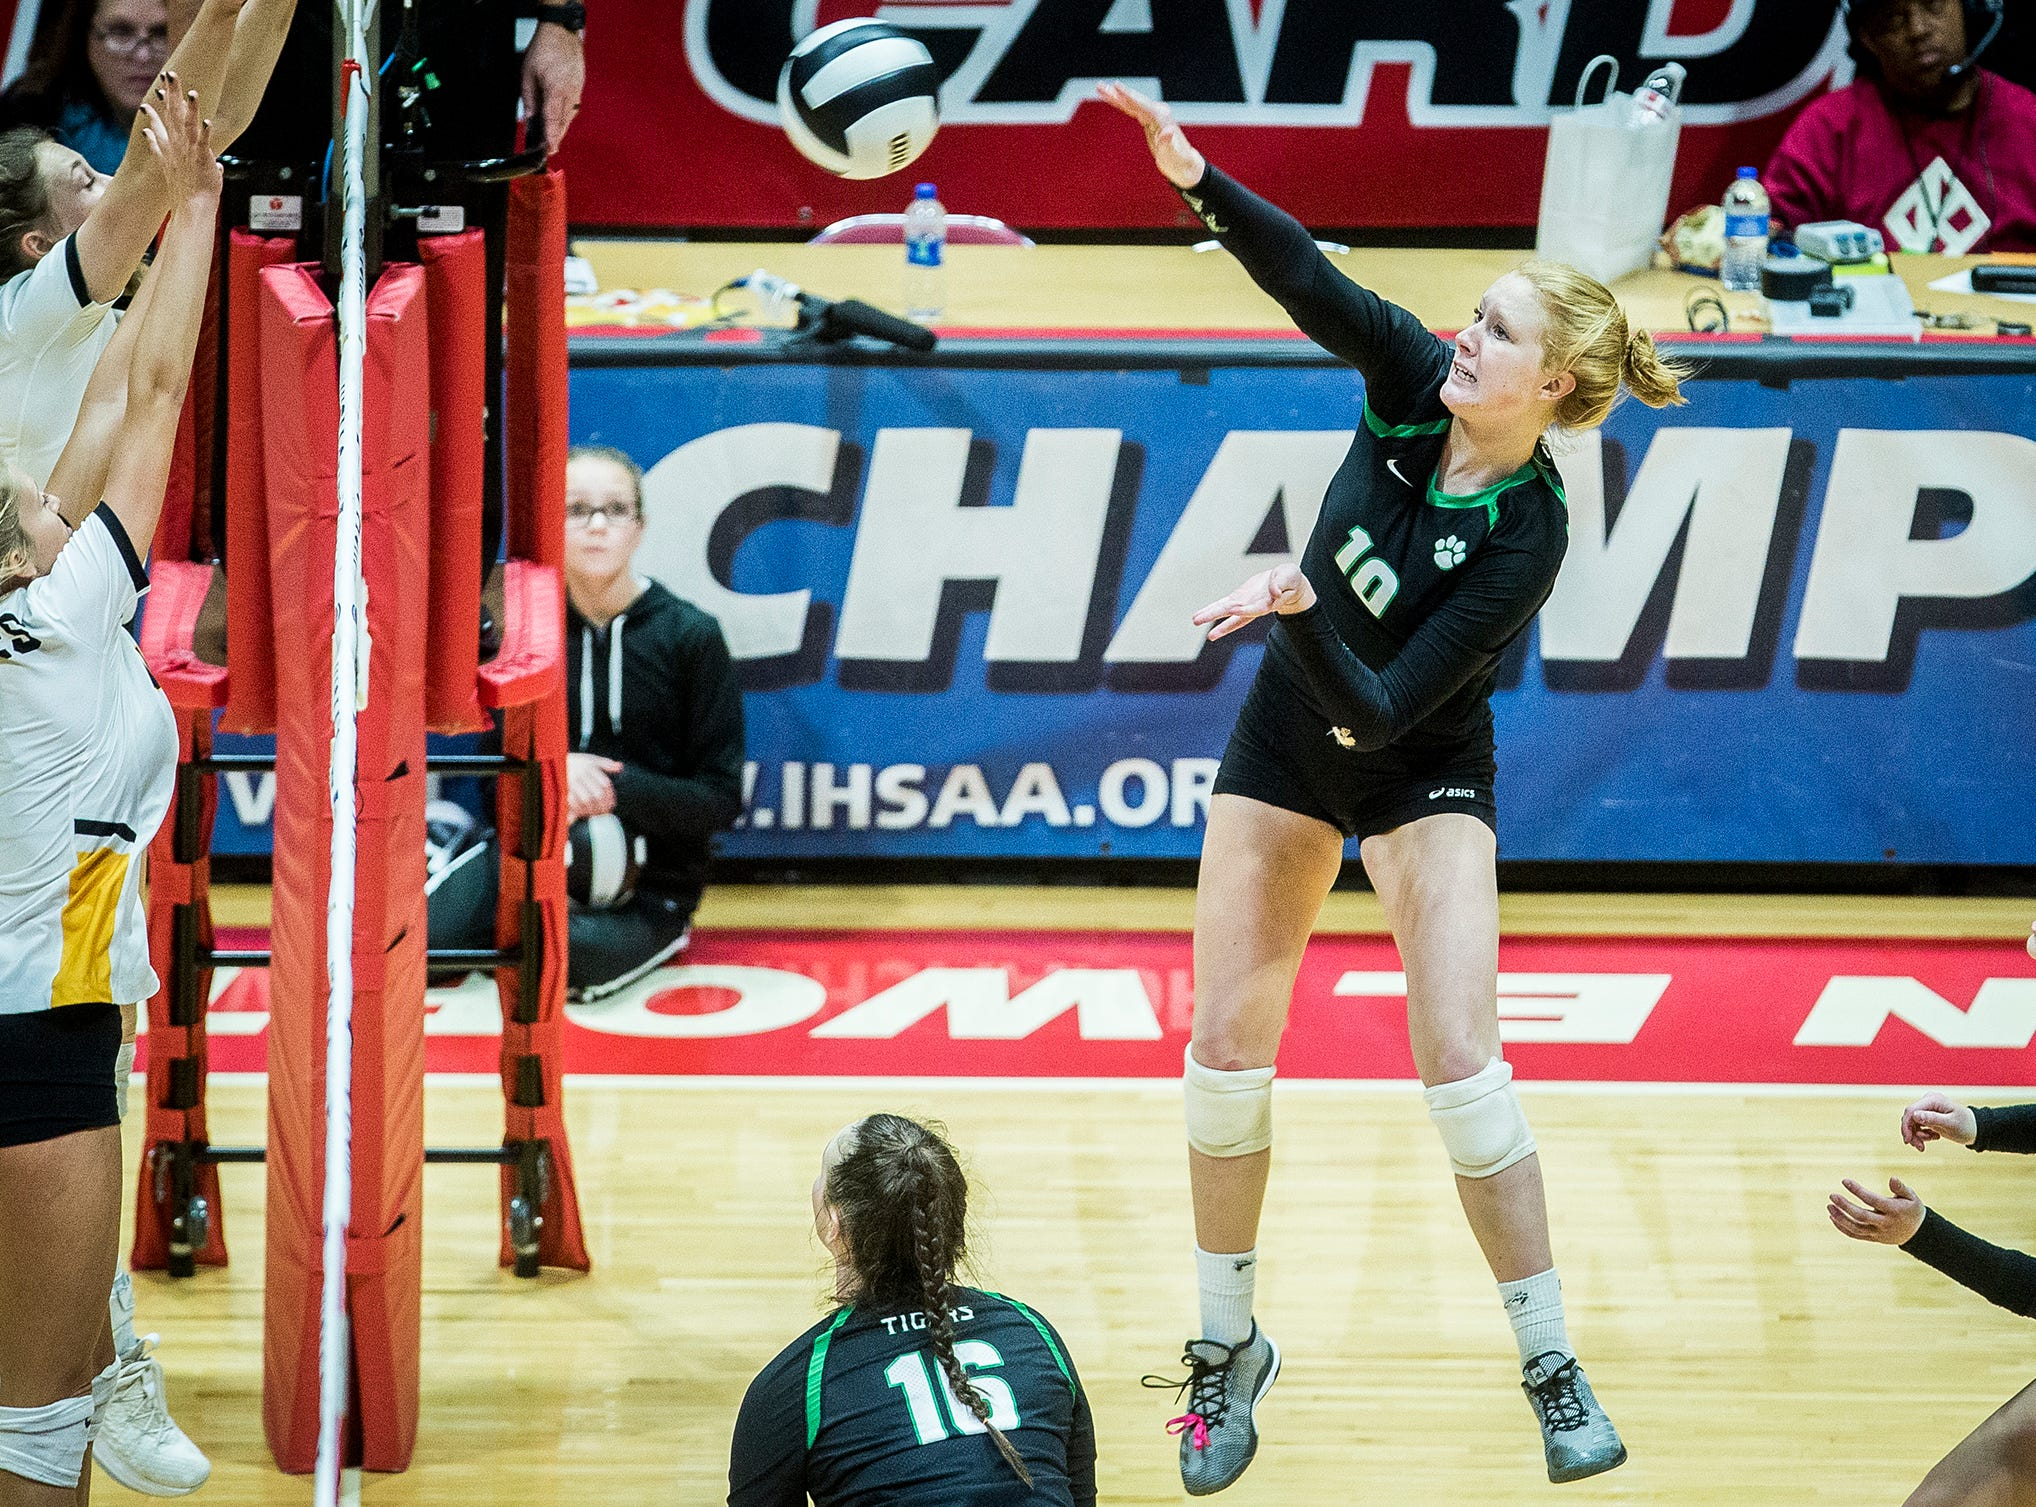 Yorktown's Tegan Seyring hits against Avon's defense in the state championship match. Seyring was one of three Tigers that made all-state.